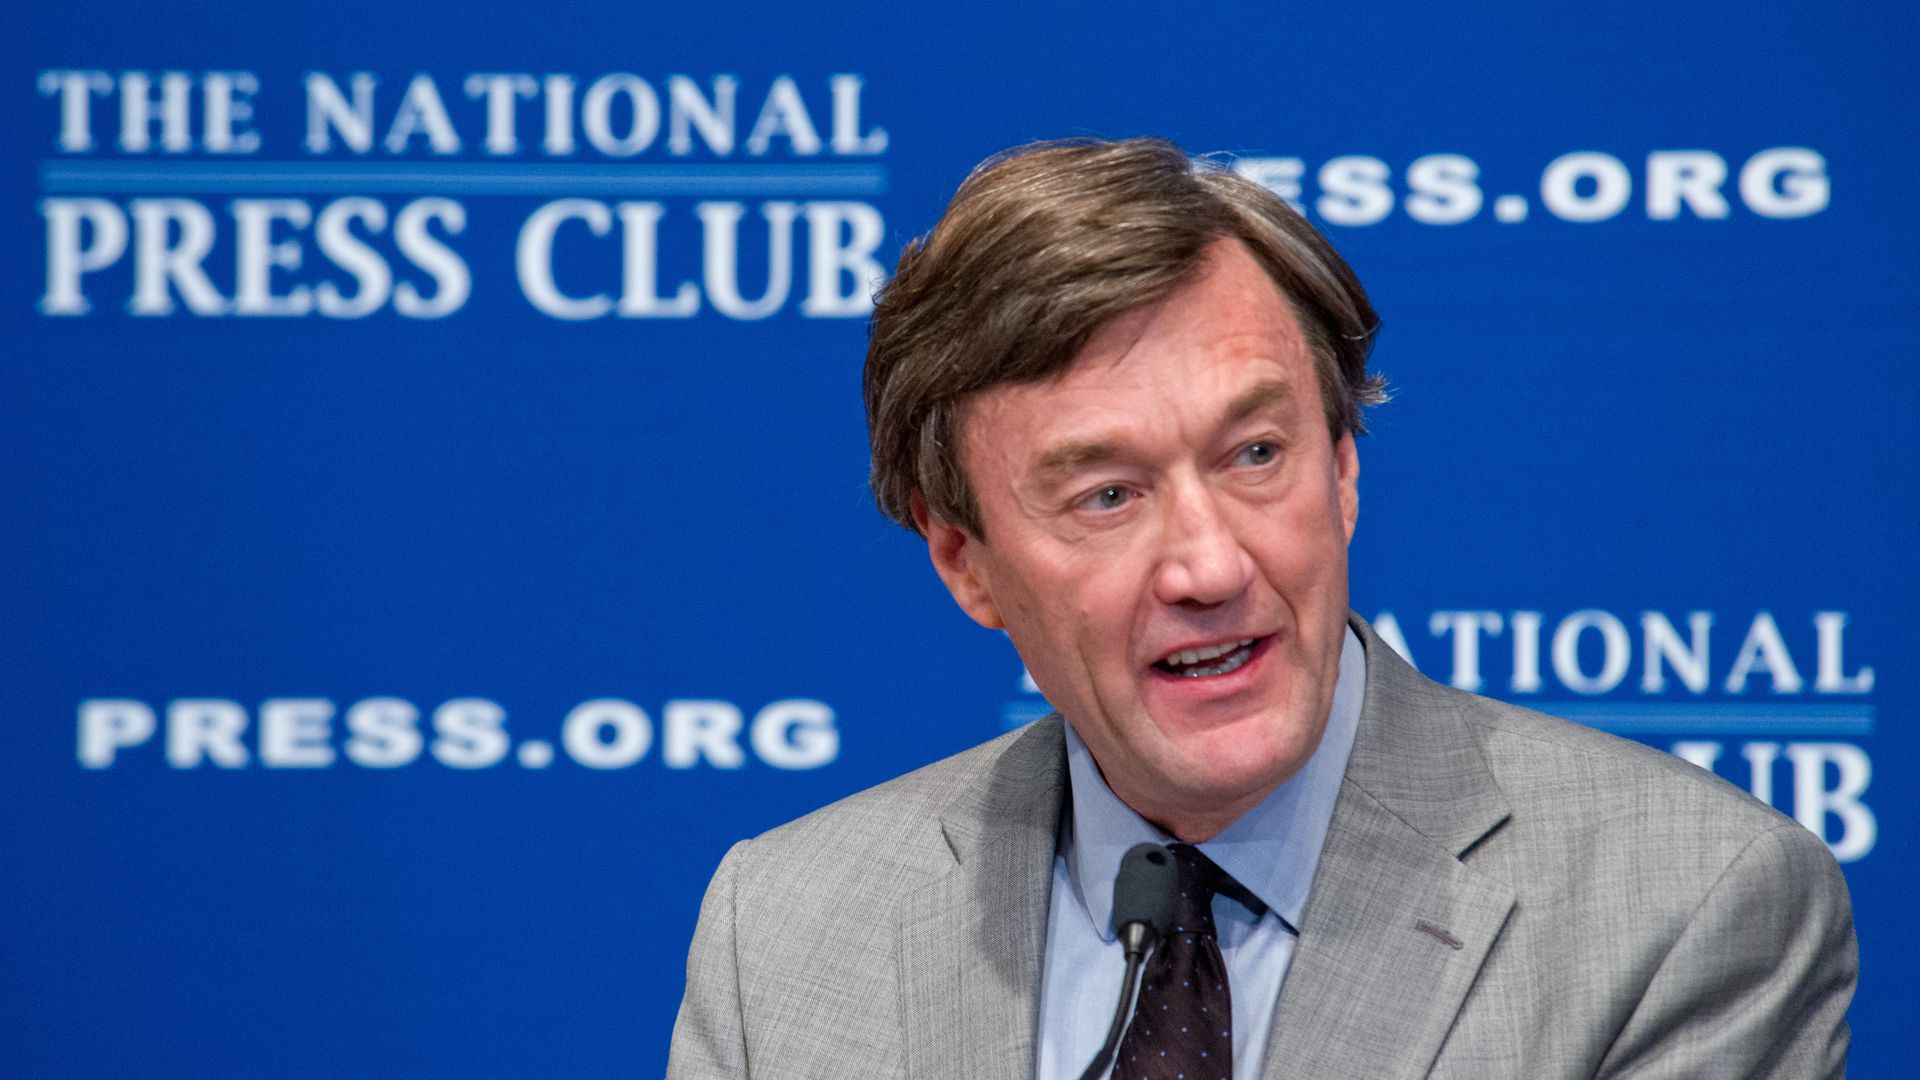 Mayo Clinic CEO John Noseworthy speaks at an event.